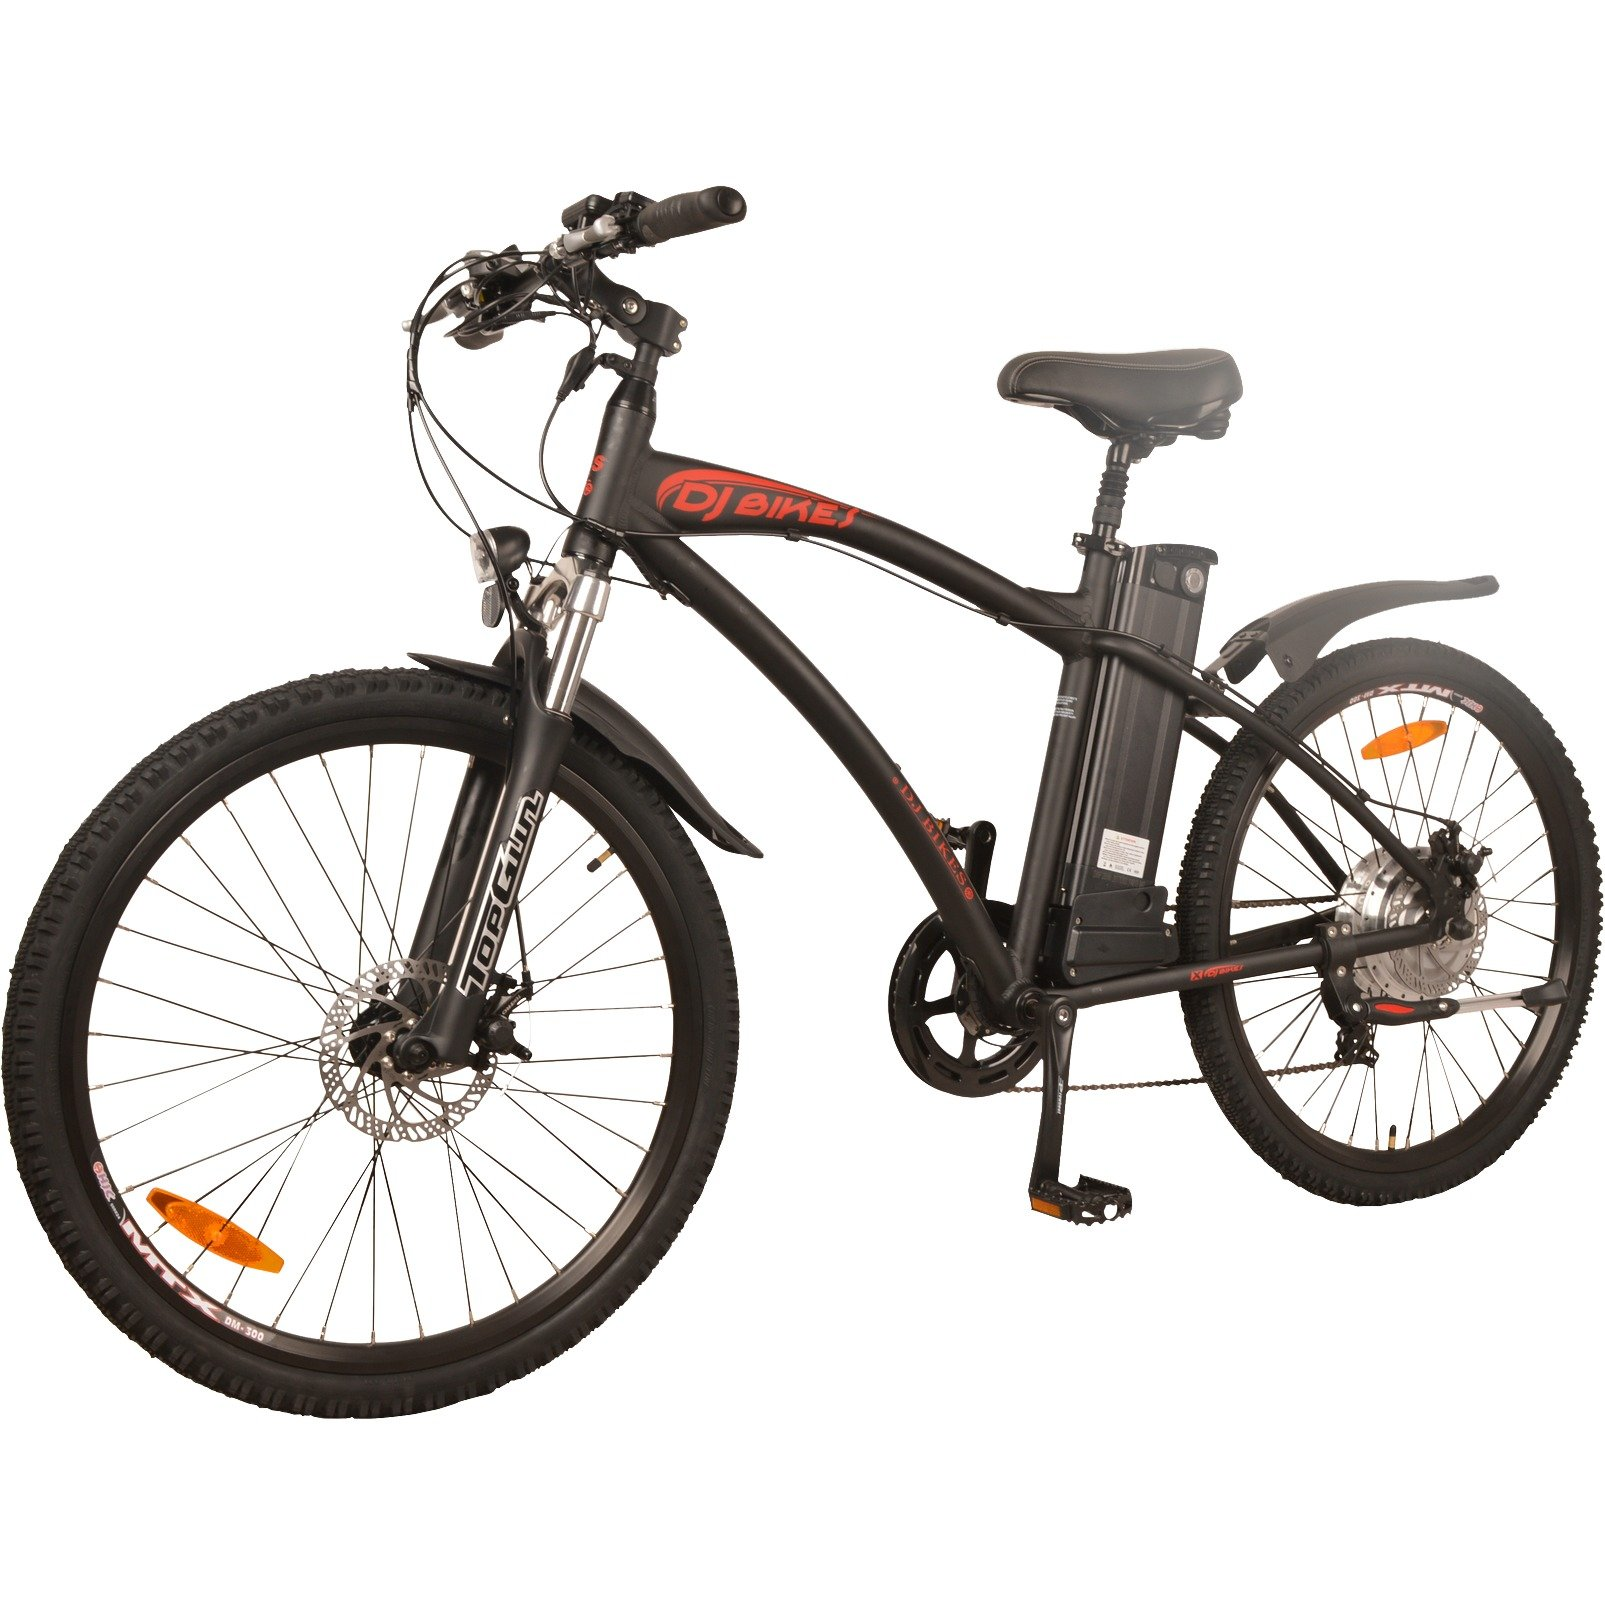 DJ Mountain Bike 500W 48V 13Ah Power Electric Bicycle, Samsung Lithium-Ion Battery, 7 Speed, Matte Black, LED Bike Light, Full Suspension And Shimano Gear